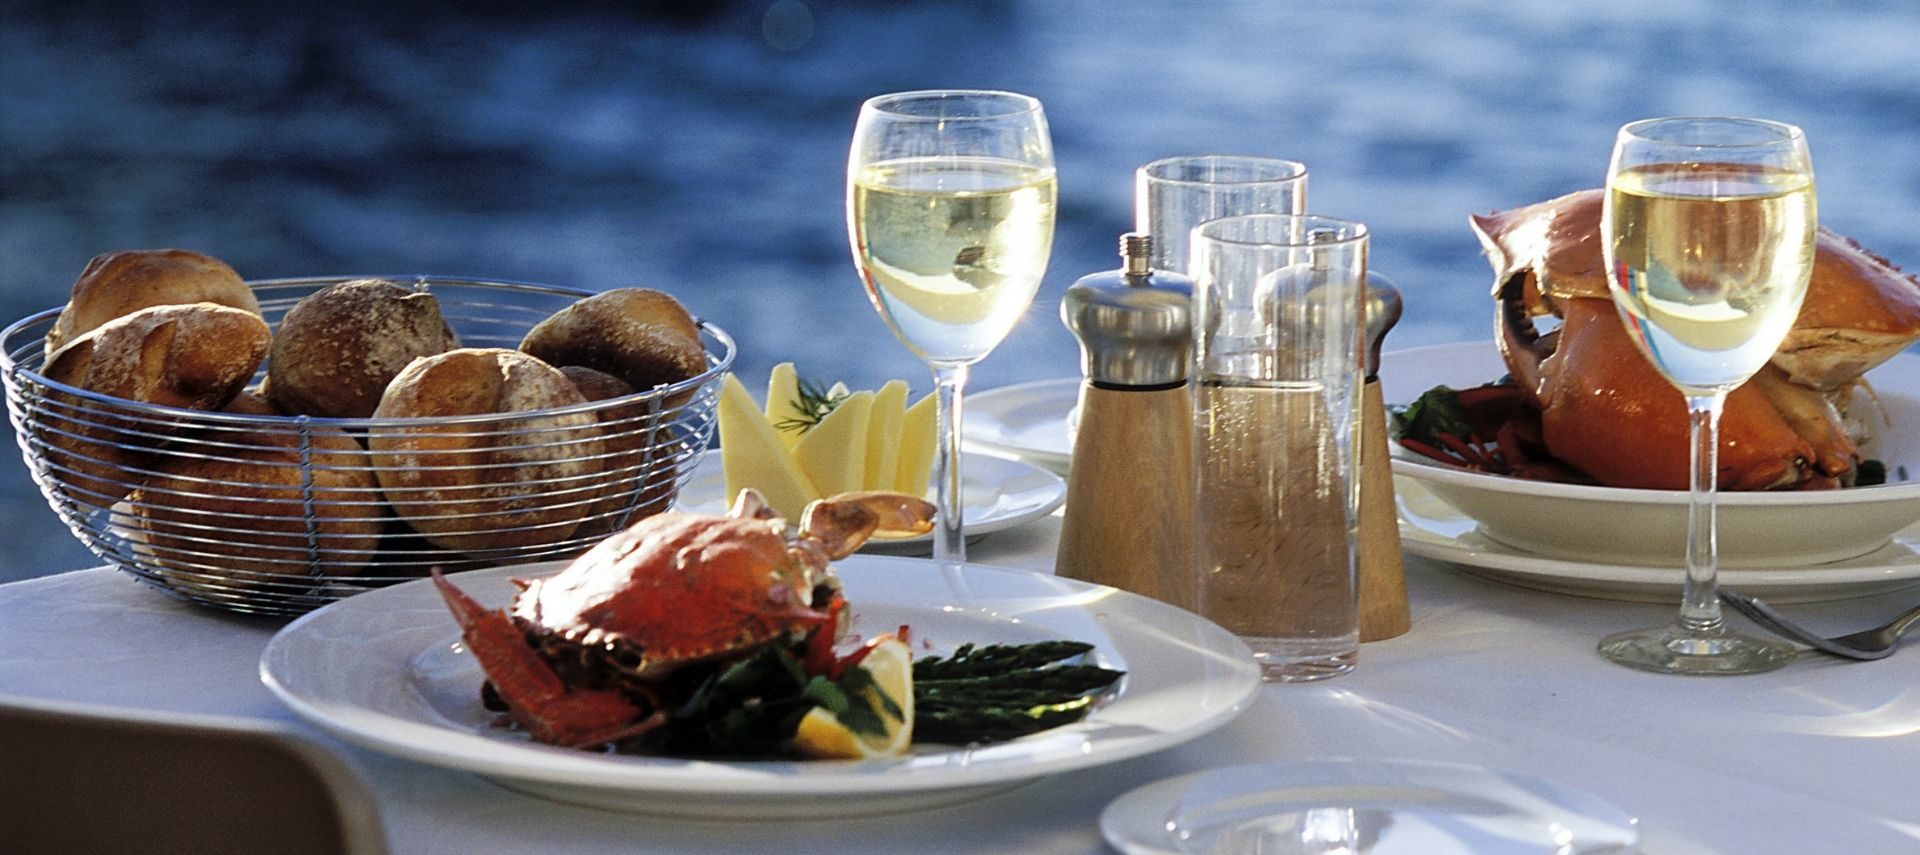 Dining table near the water with fresh seafood